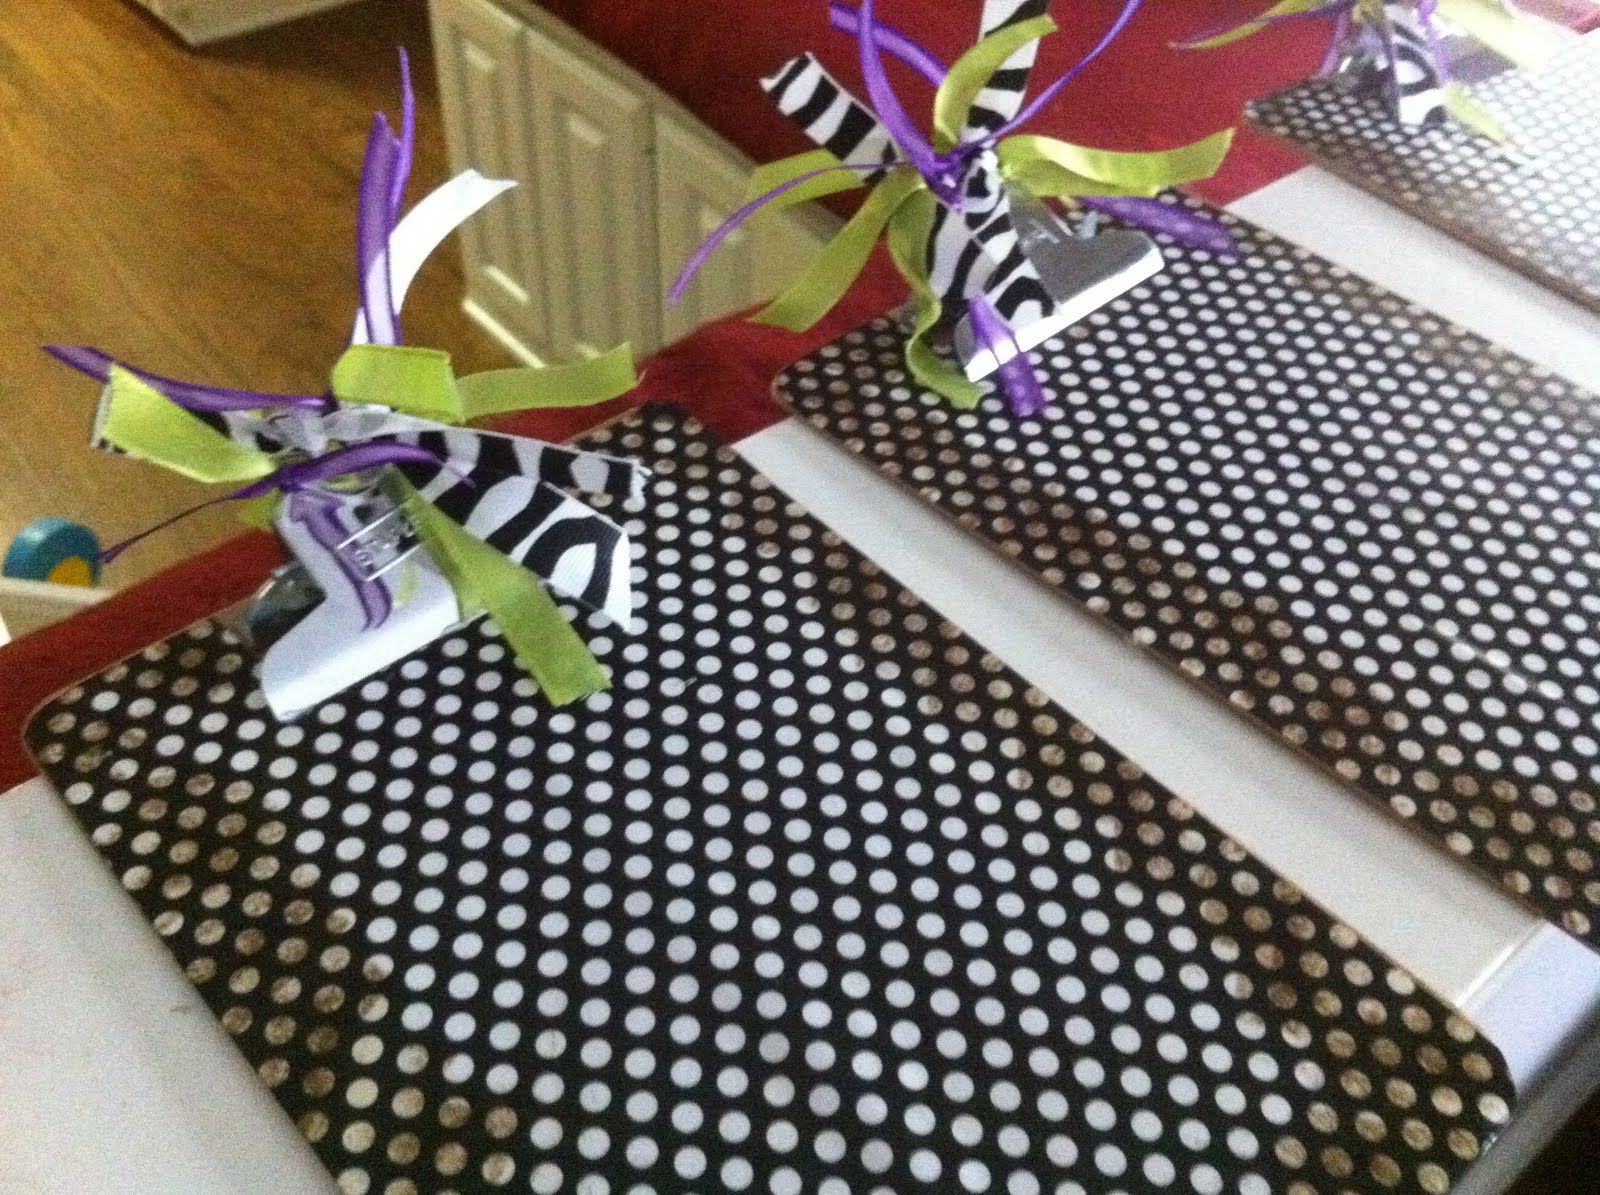 scentsy party ideas | Some clipboards I decorated for my Scentsy parties! I love…